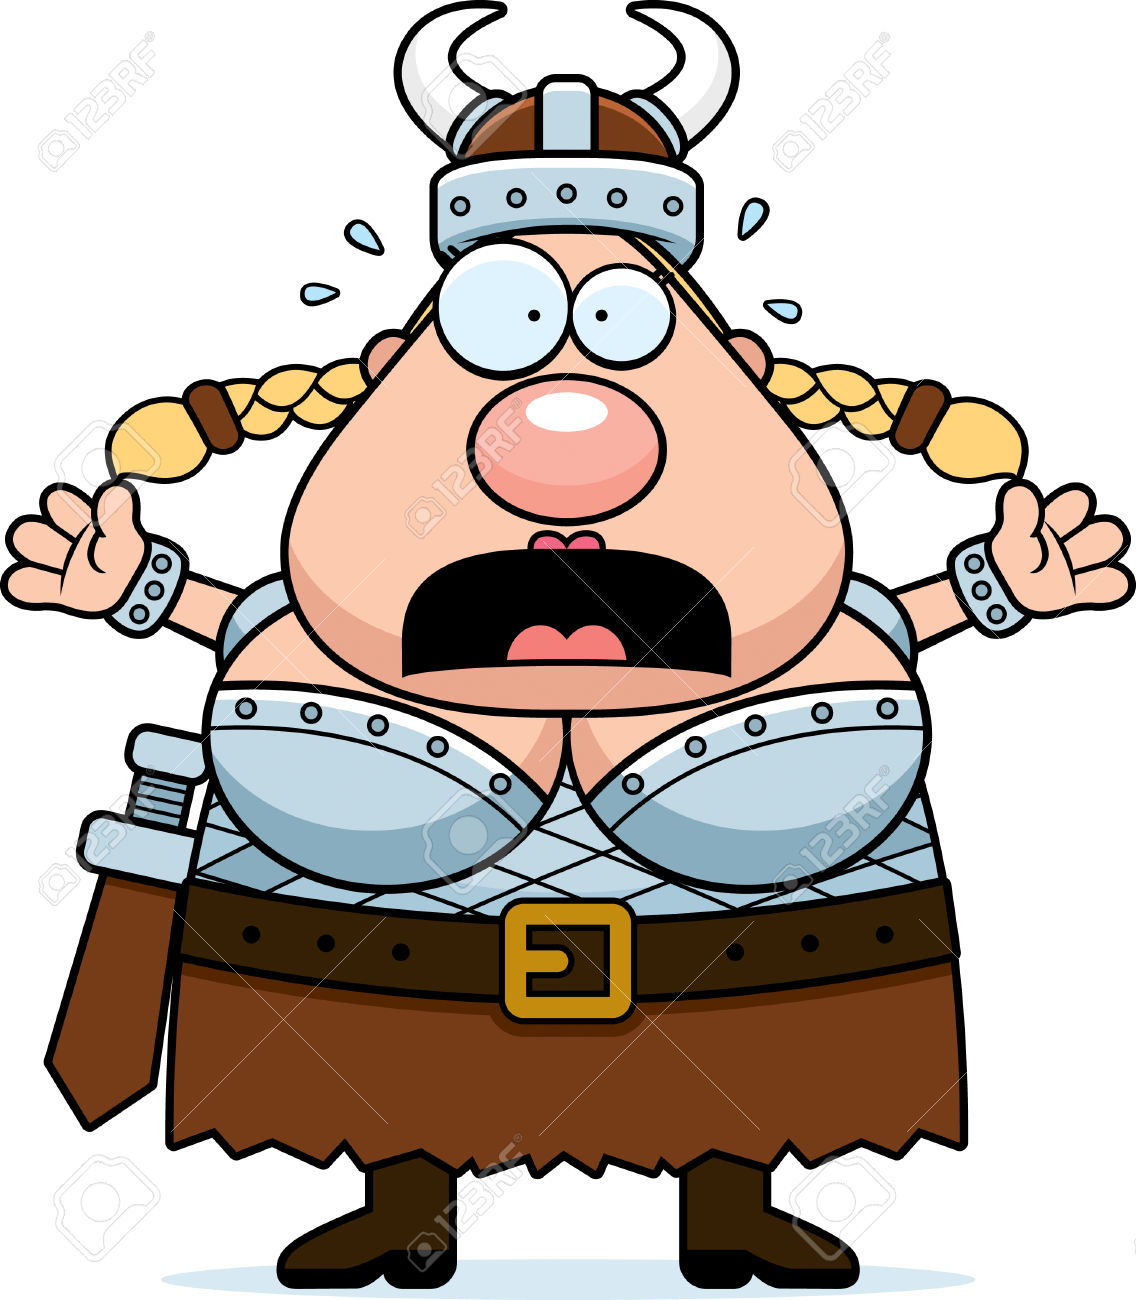 1136x1300 Viking Clipart Scared